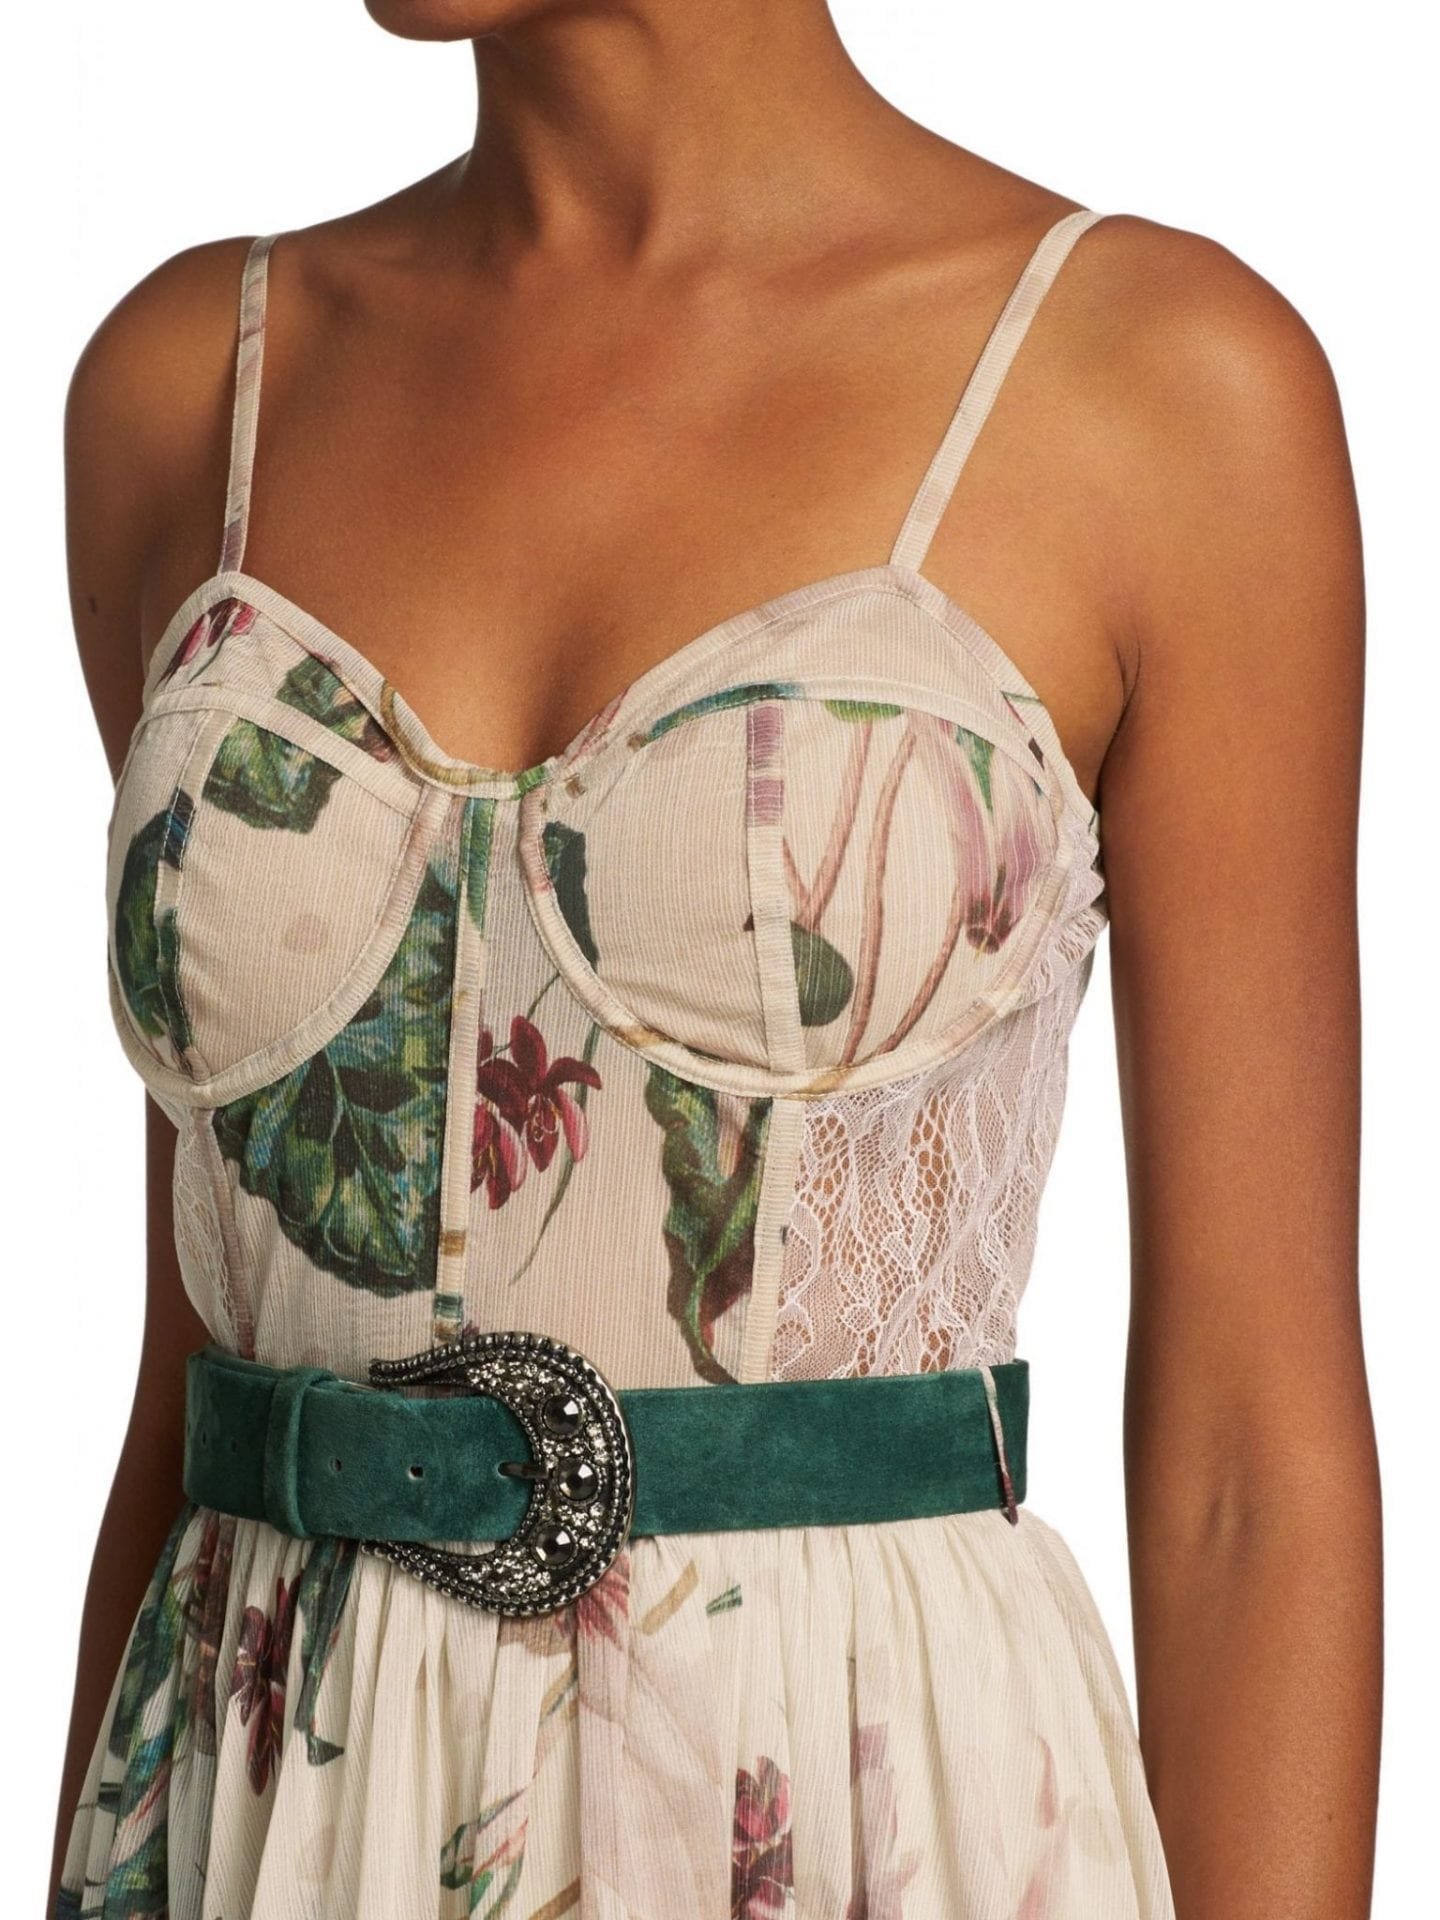 PATBO Sophia Belted Bustier Maxi Dress